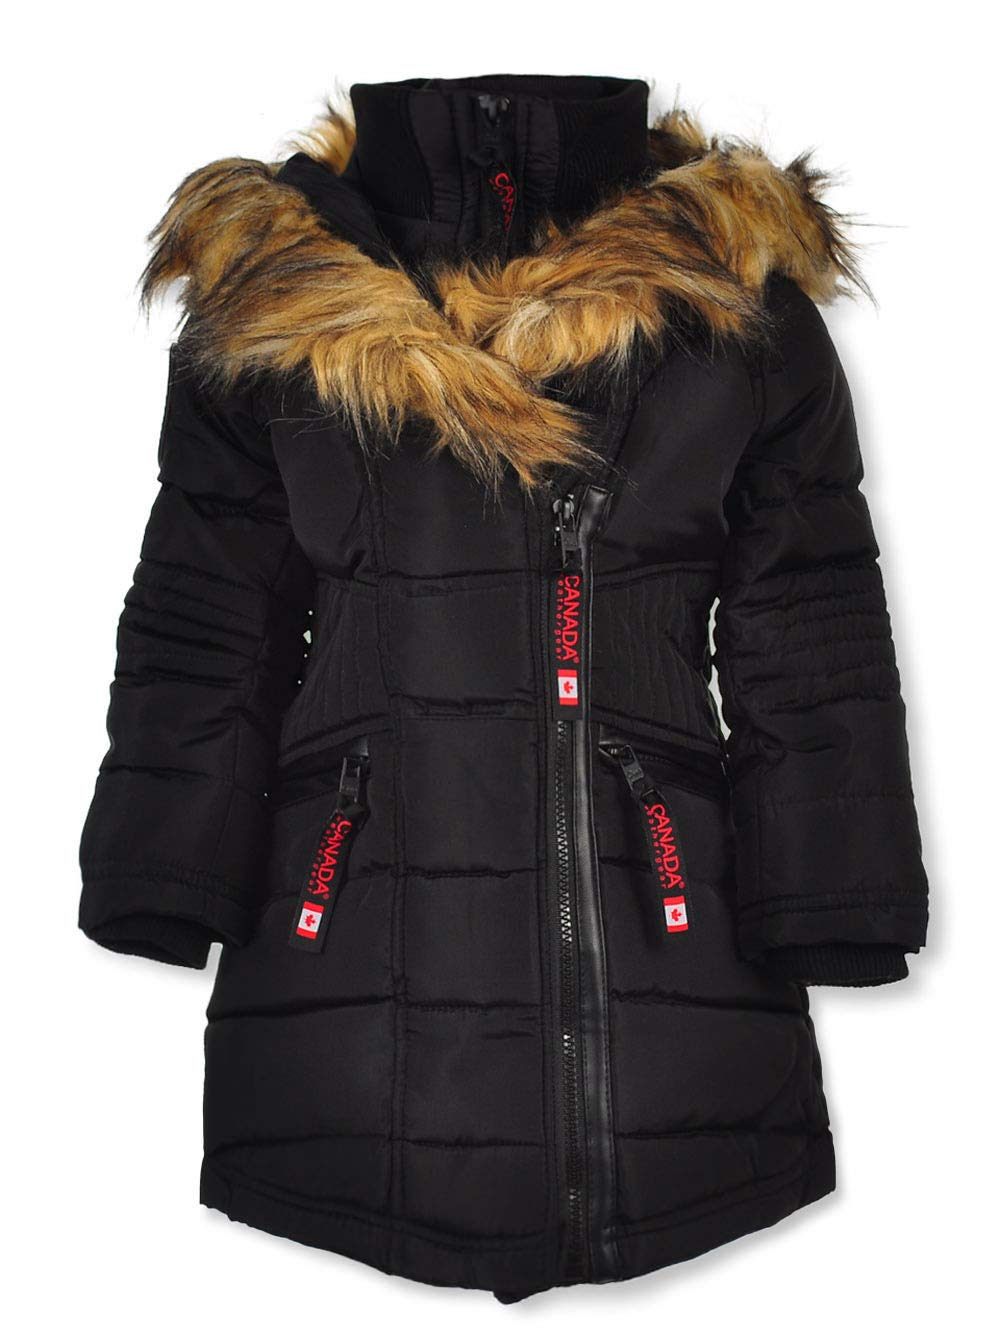 CANADA WEATHER GEAR Little Girls Moto-Stitched Insulated Jacket - Black, 6X by CANADA WEATHER GEAR